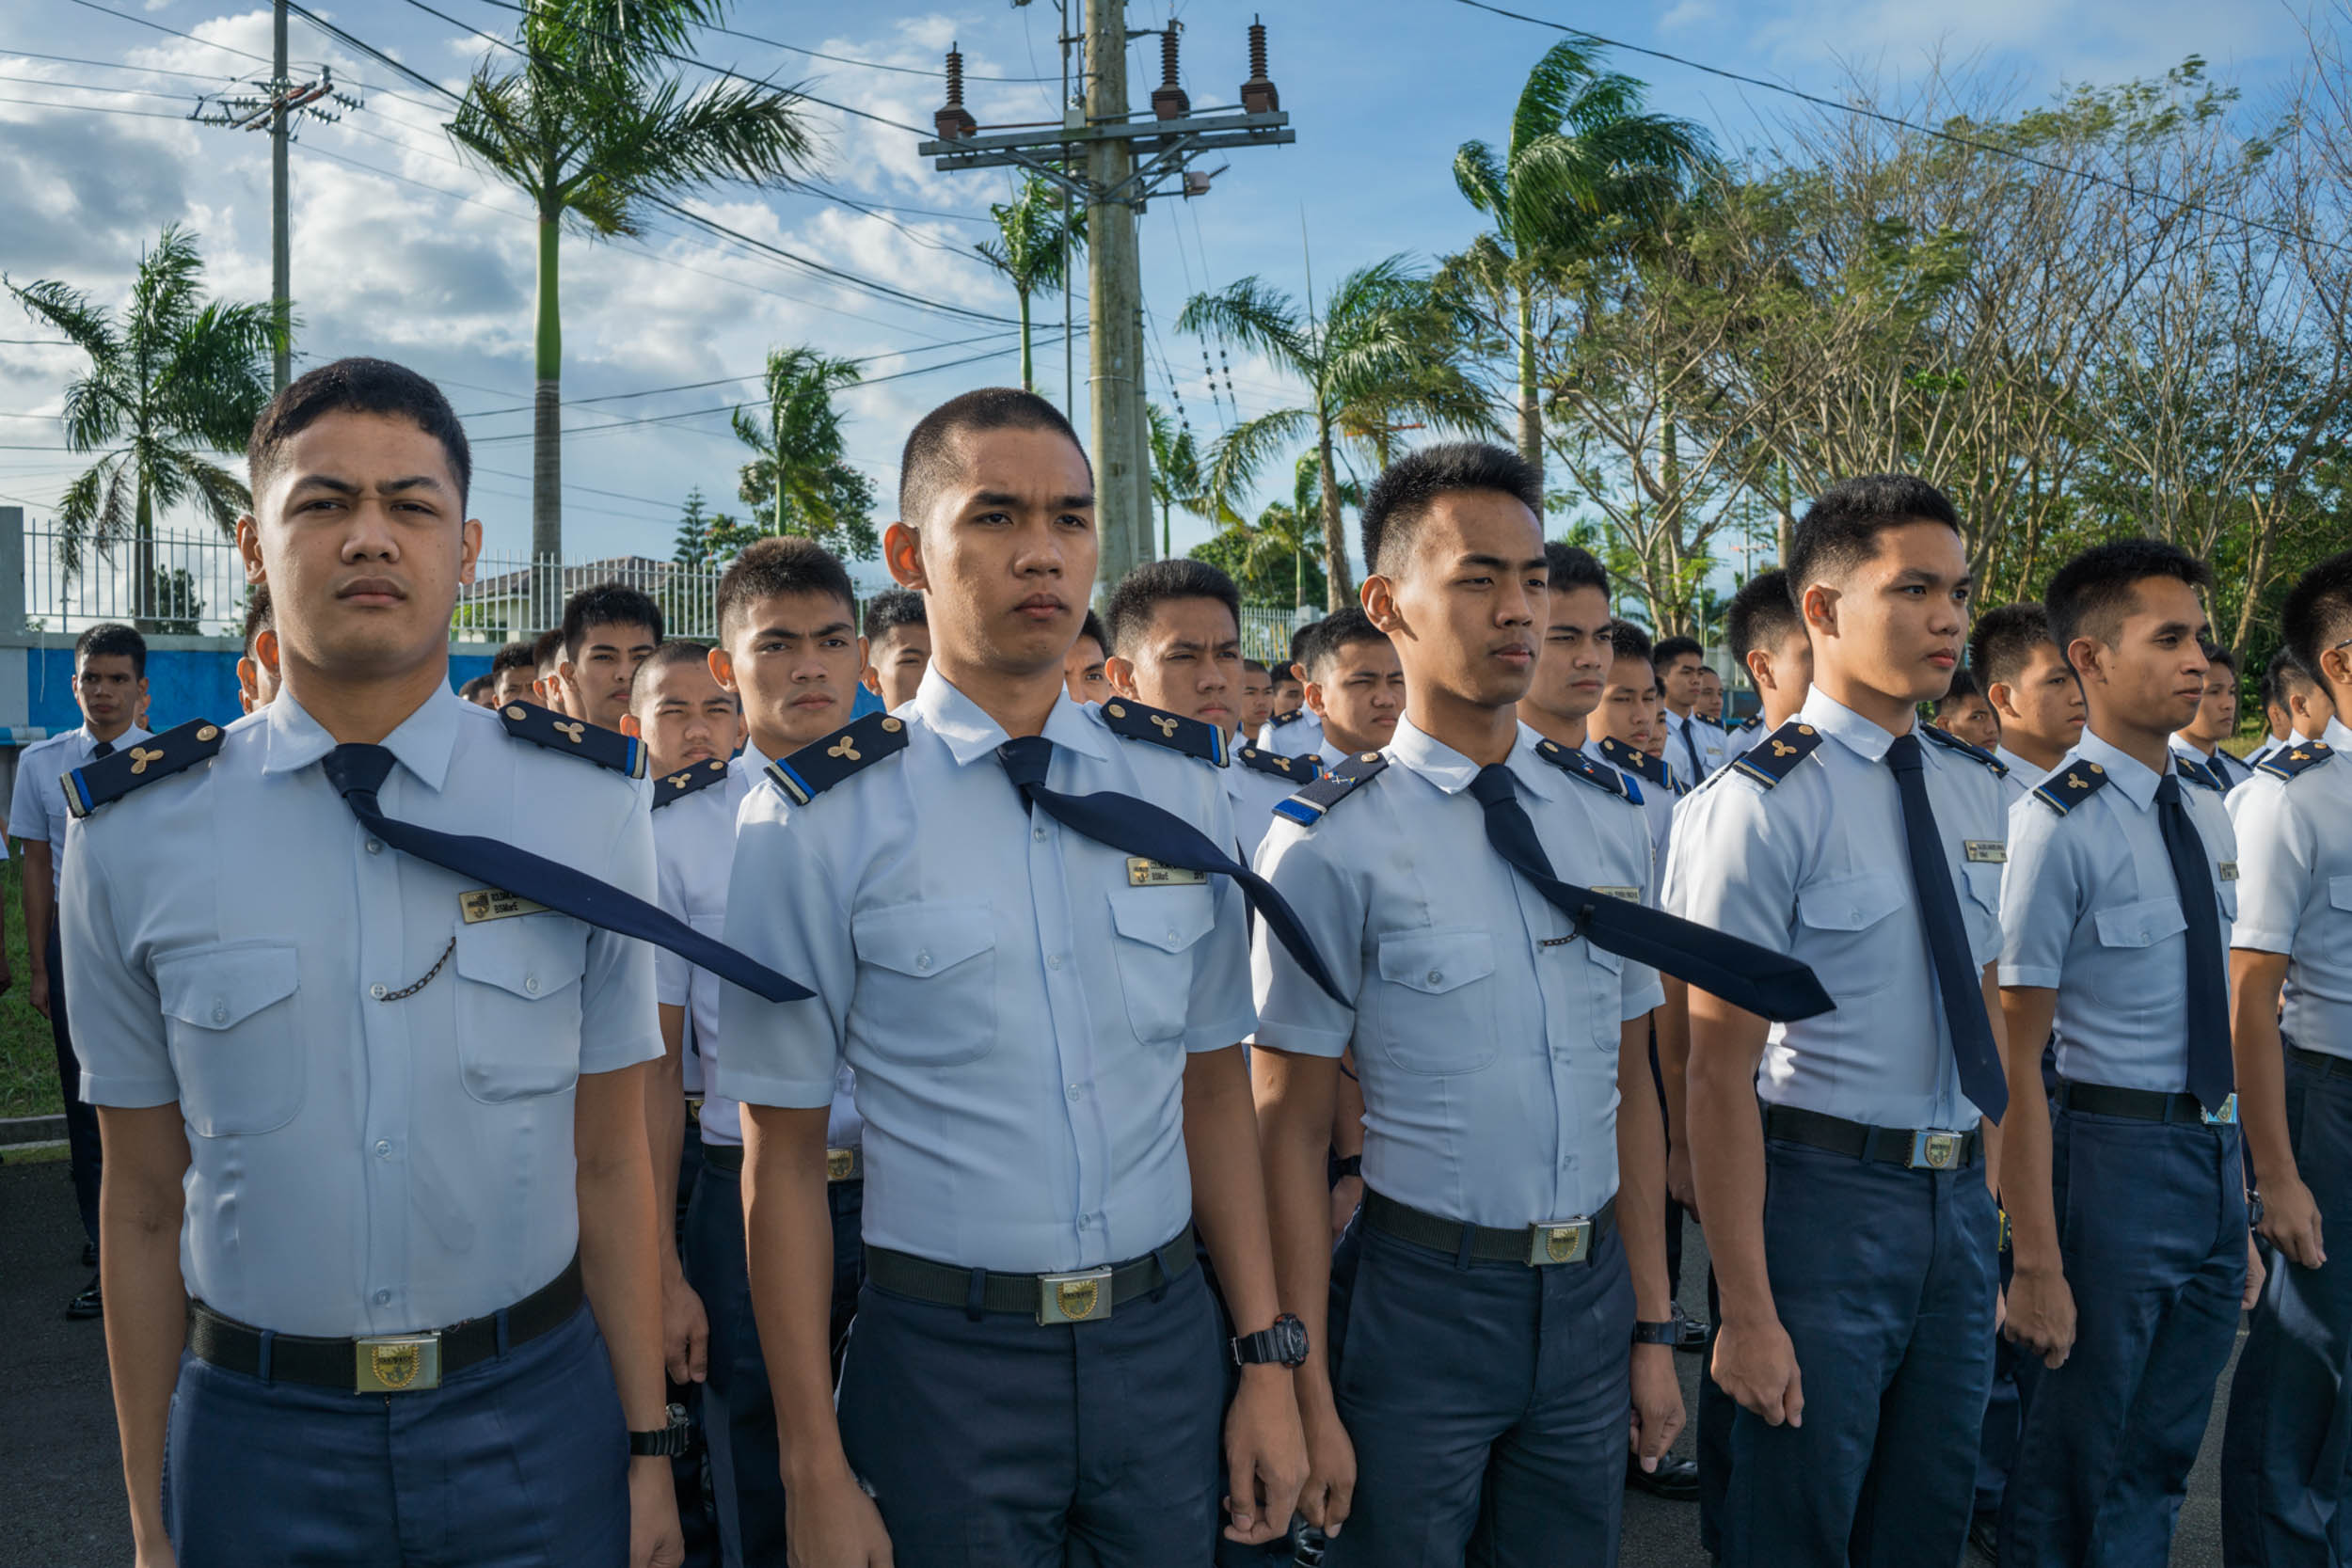 Cadets at a merchant marine academy near Manila train for one of the most prestigious jobs for workers in the diaspora. Those who succeed are ensured a path to a middle-class life for their families. A quarter of the worldÕs seafarers come from the Philippines. 